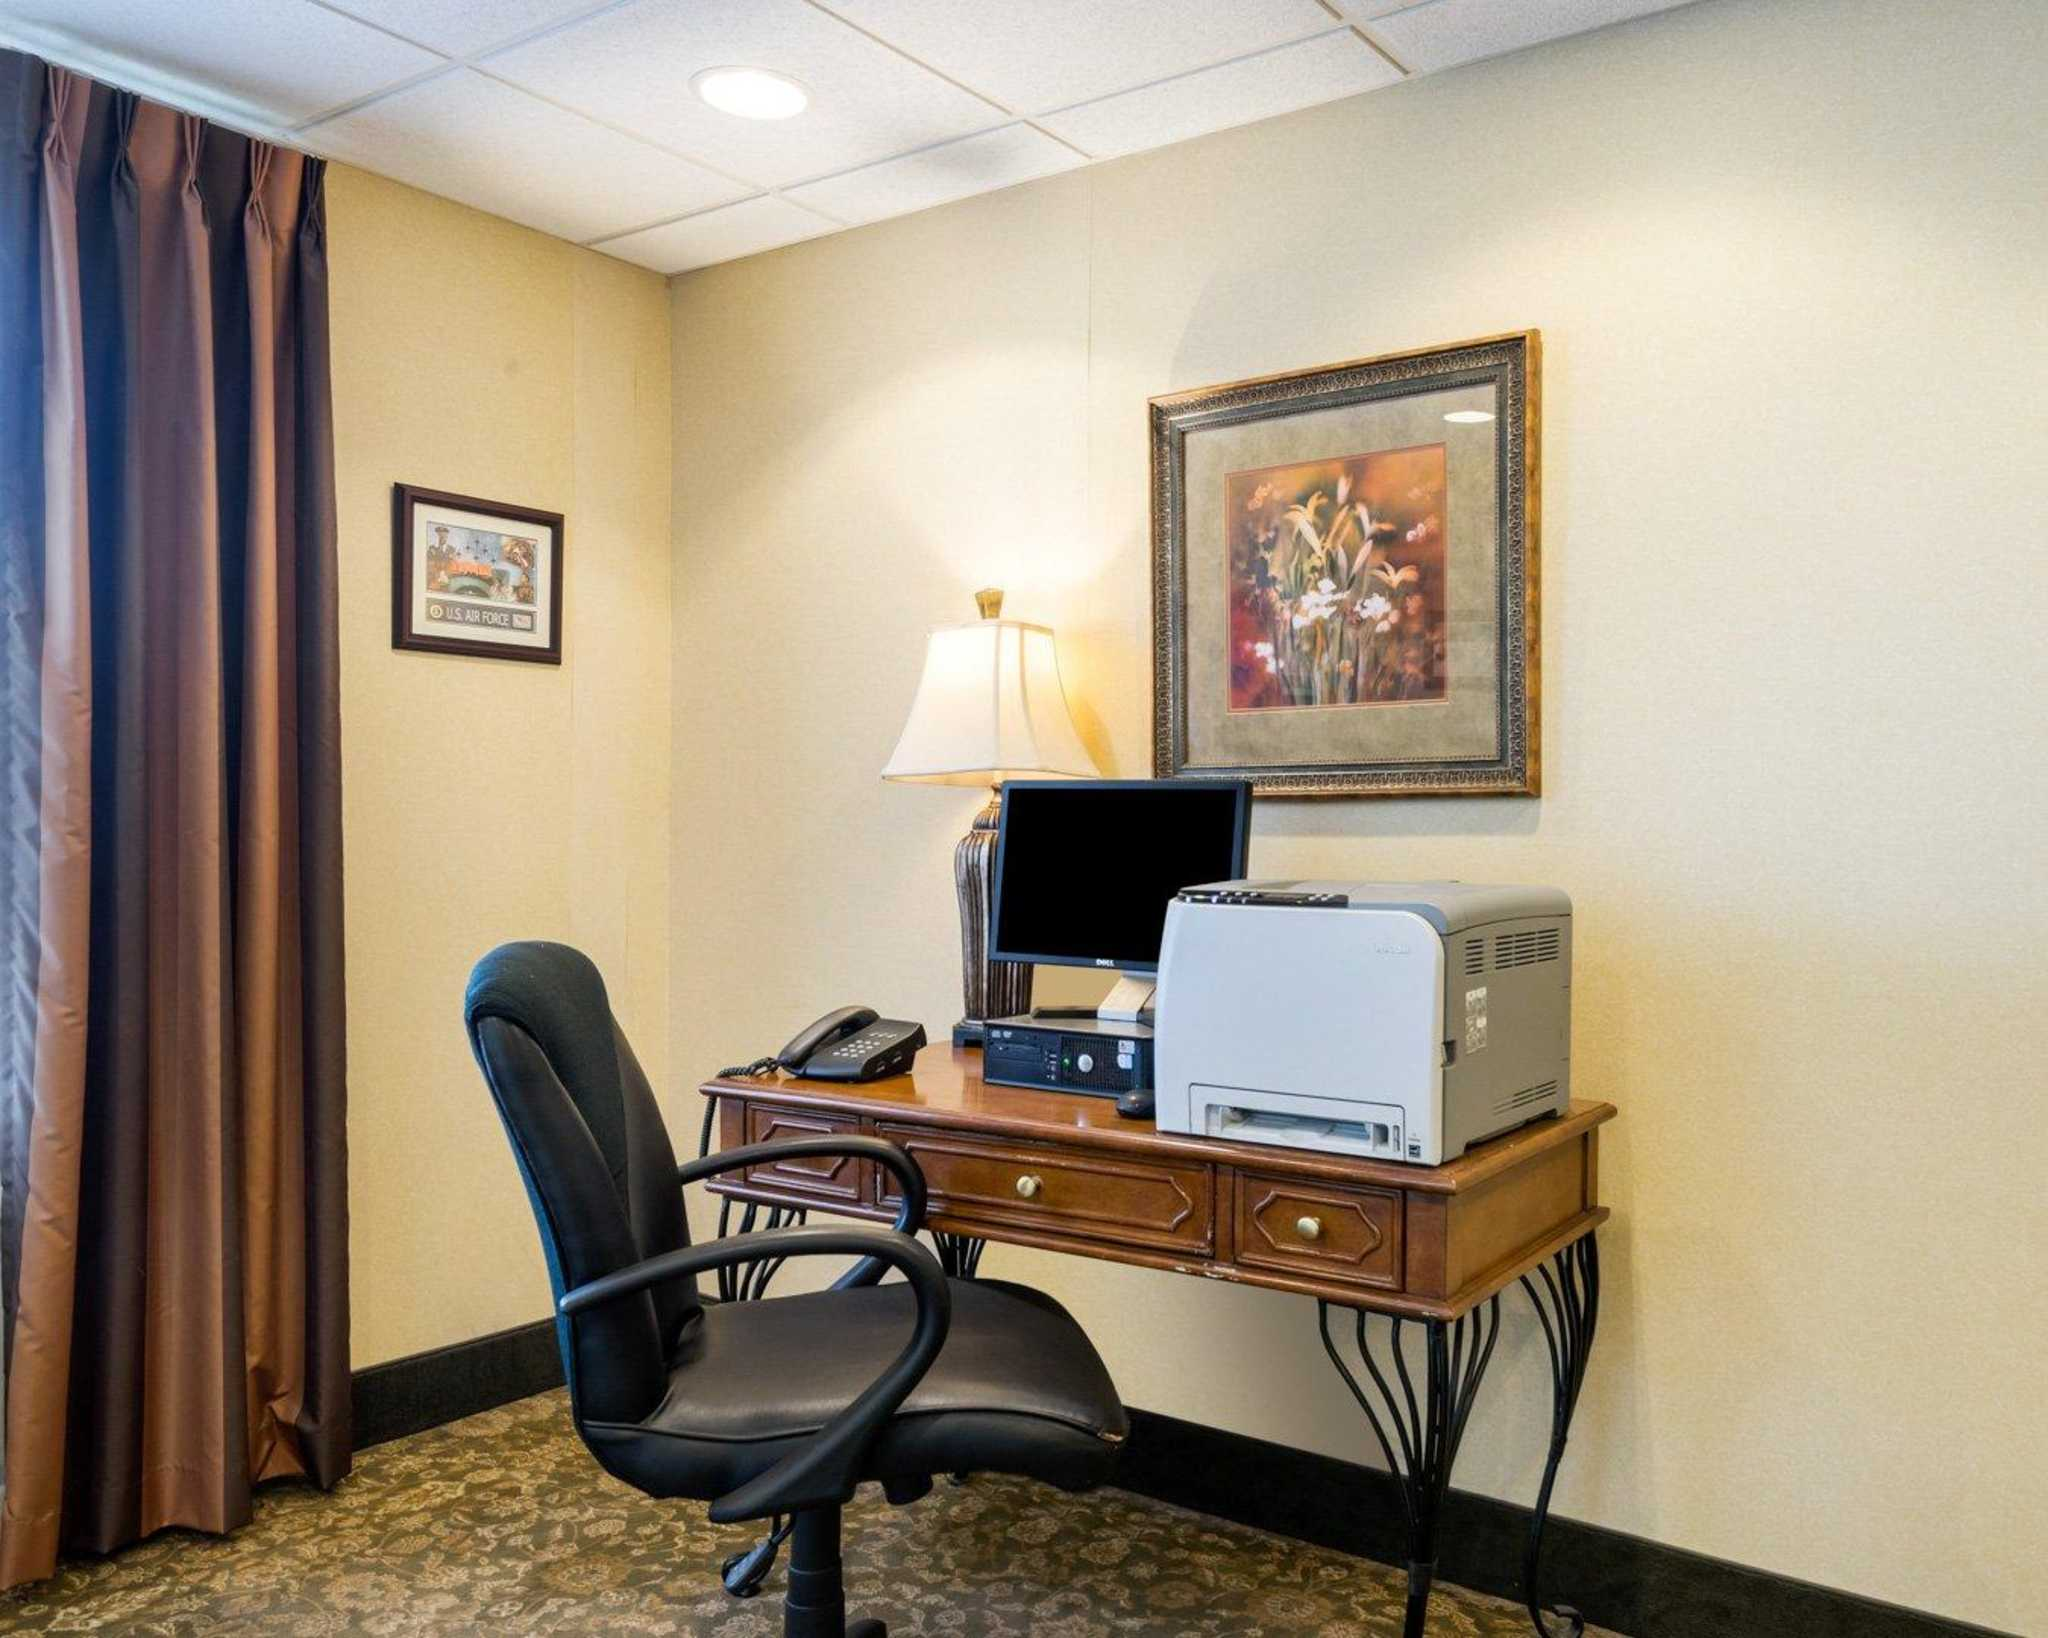 MainStay Suites image 35